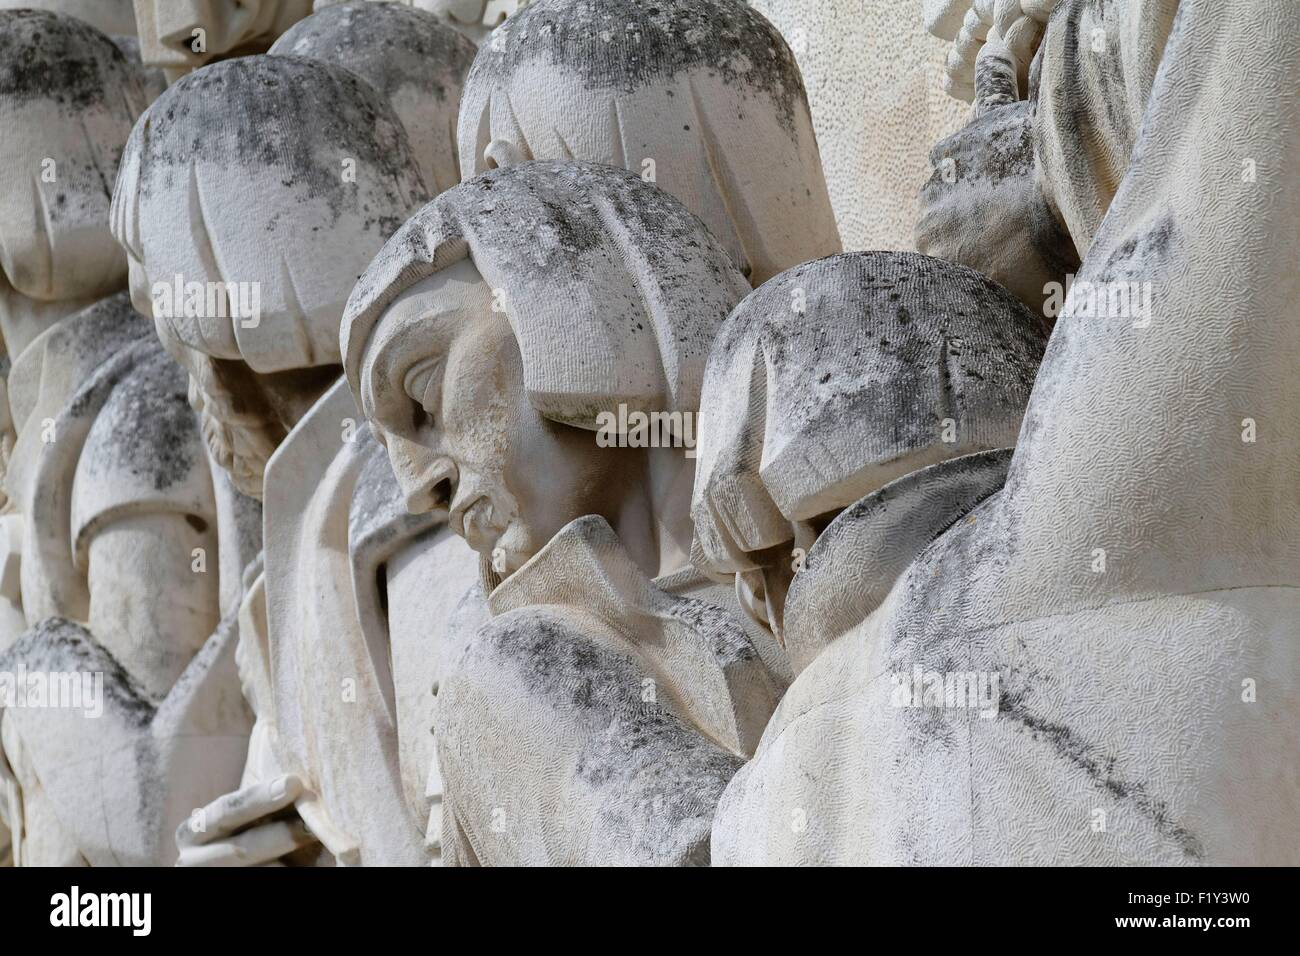 Portugal, Lisbon, Belem, Padrao dos Descobrimentos (Monument to the Discoveries) from 1960 - Stock Image